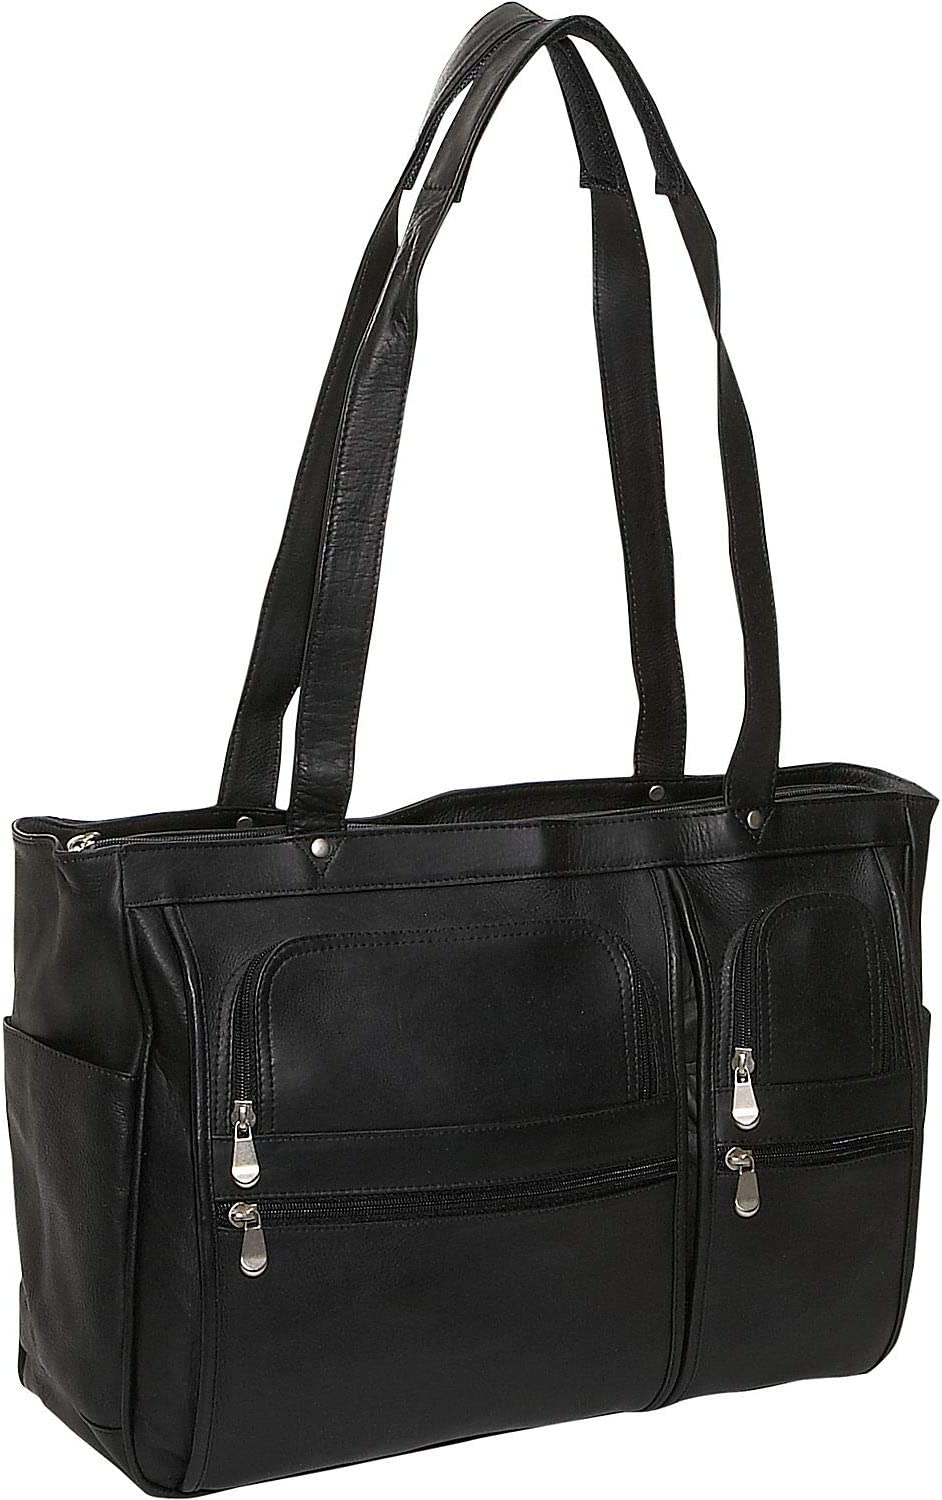 David King Leather Womens Multi Pocket Briefcase in Black